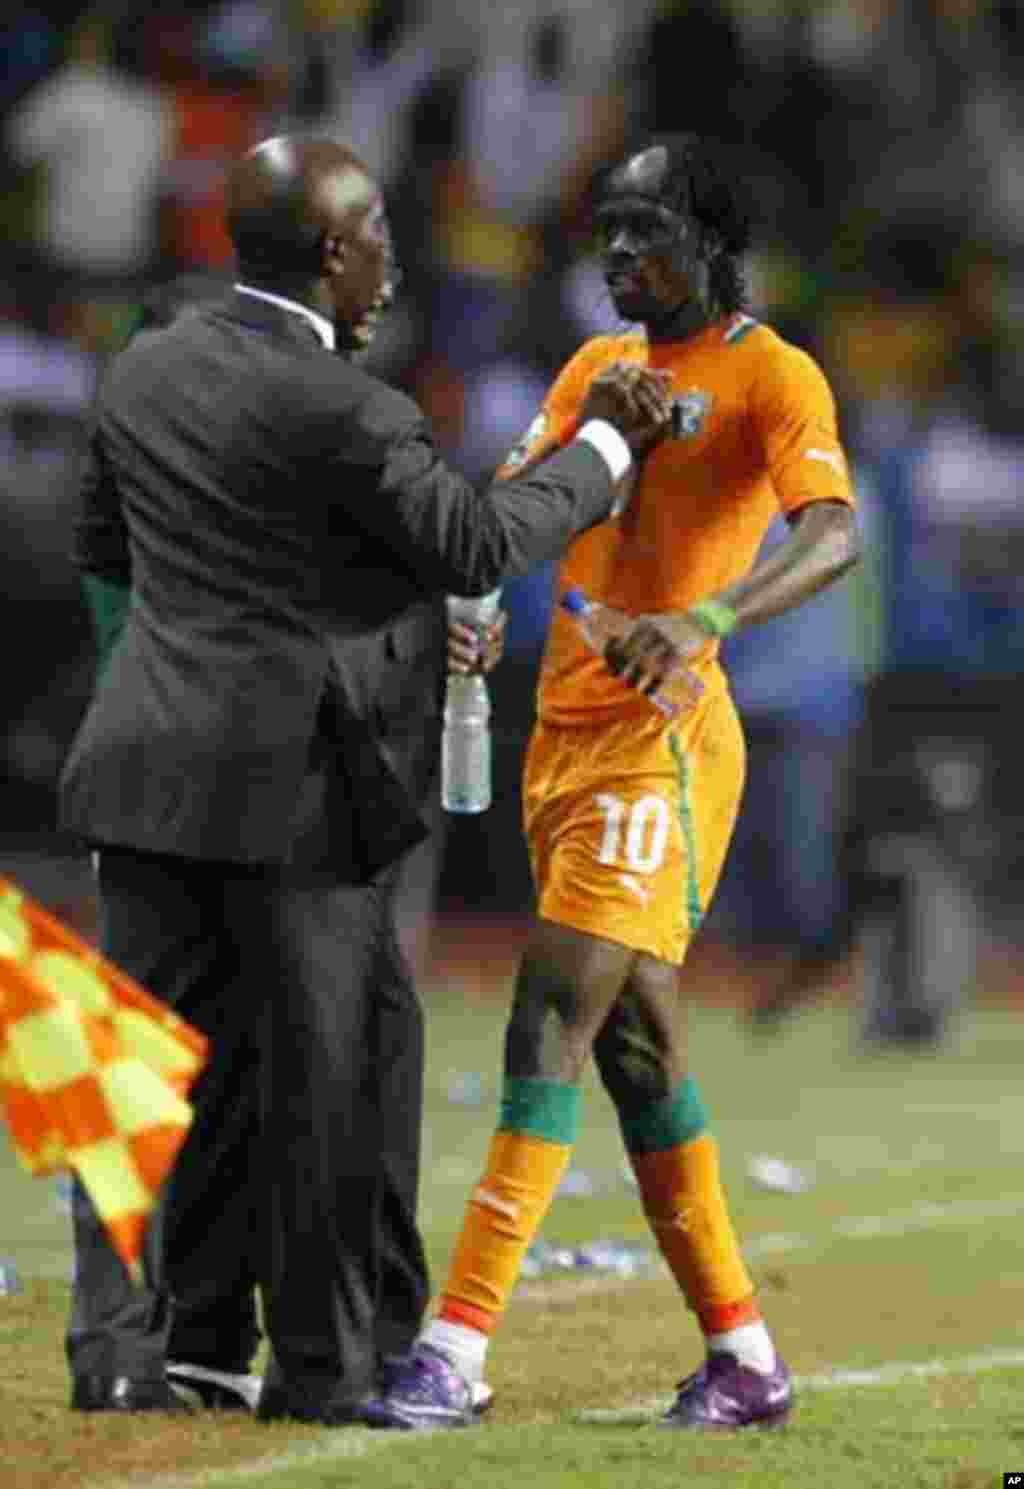 Ivory Coast's Gervinho (R) celebrates his goal against Mali with his coach Francois Zahoui during their African Nations Cup semi-final soccer match at the Stade De L'Amitie Stadium in Gabon's capital Libreville February 8, 2012.